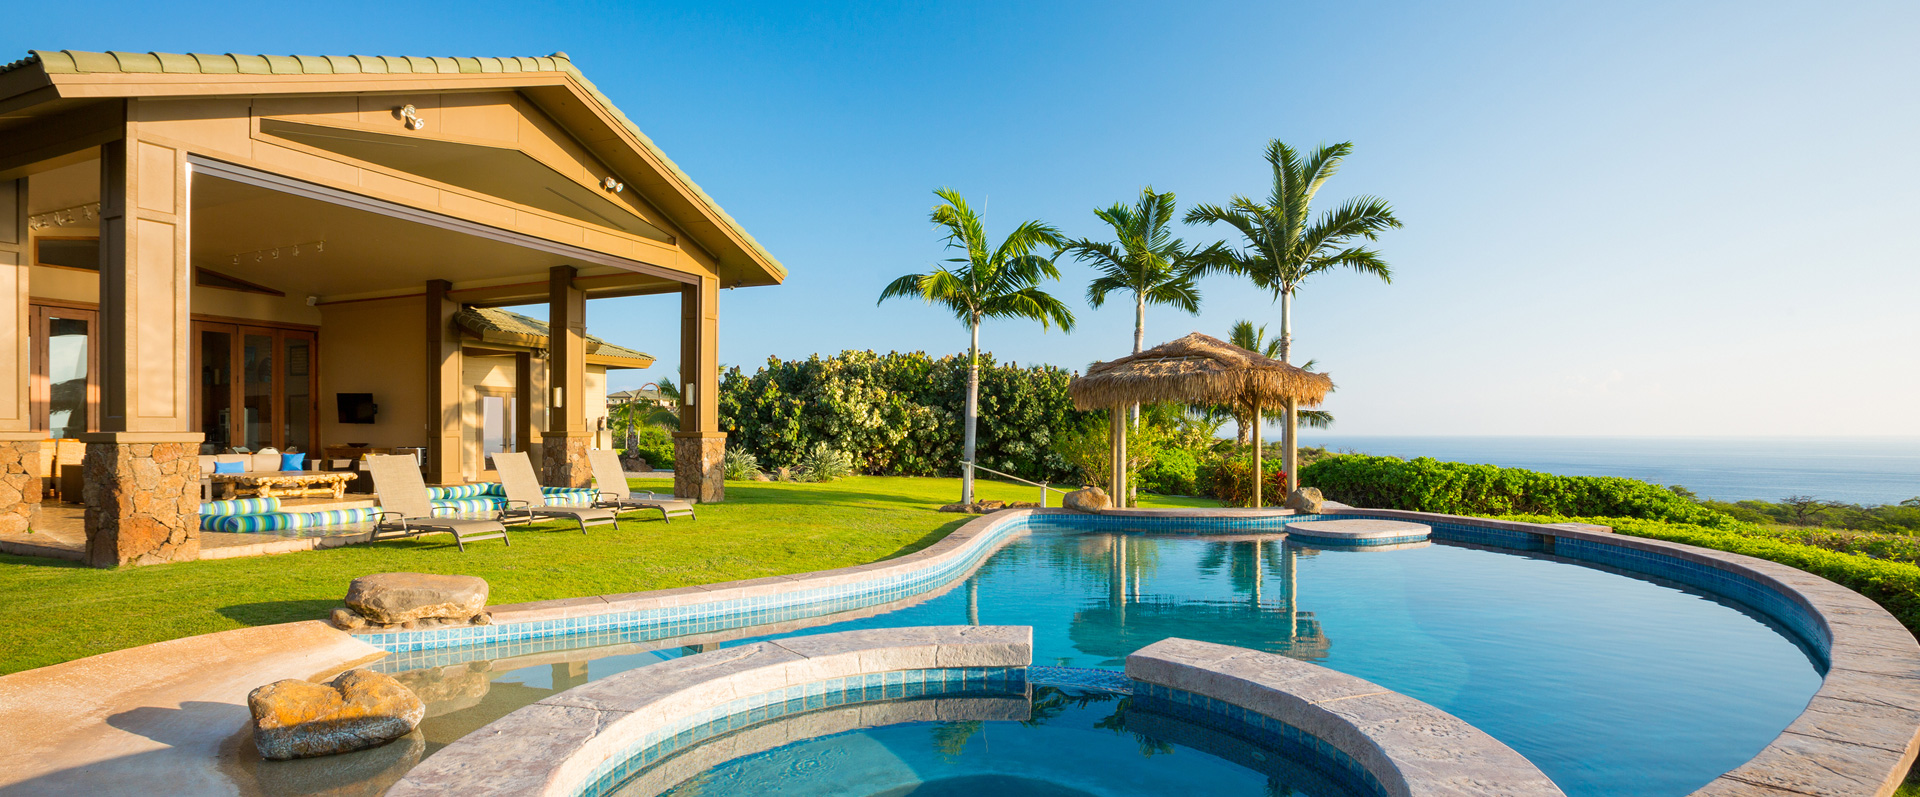 Pool remodeling repair maintenance services for Pool renovations